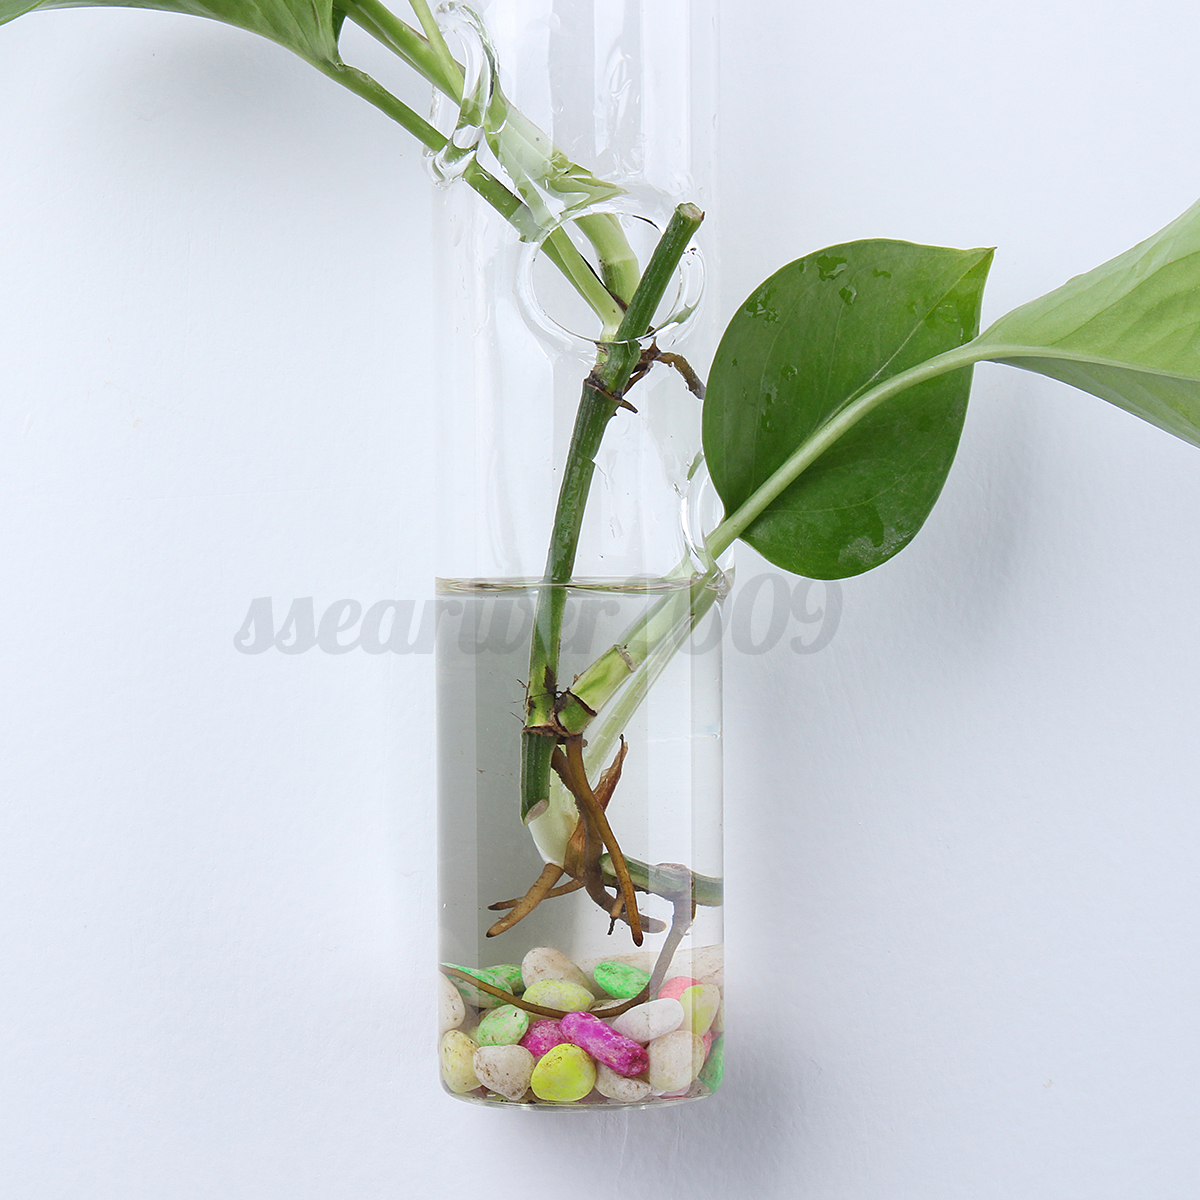 Wall hanging flower vase terrarium container plant holder for Diy wall plant holder